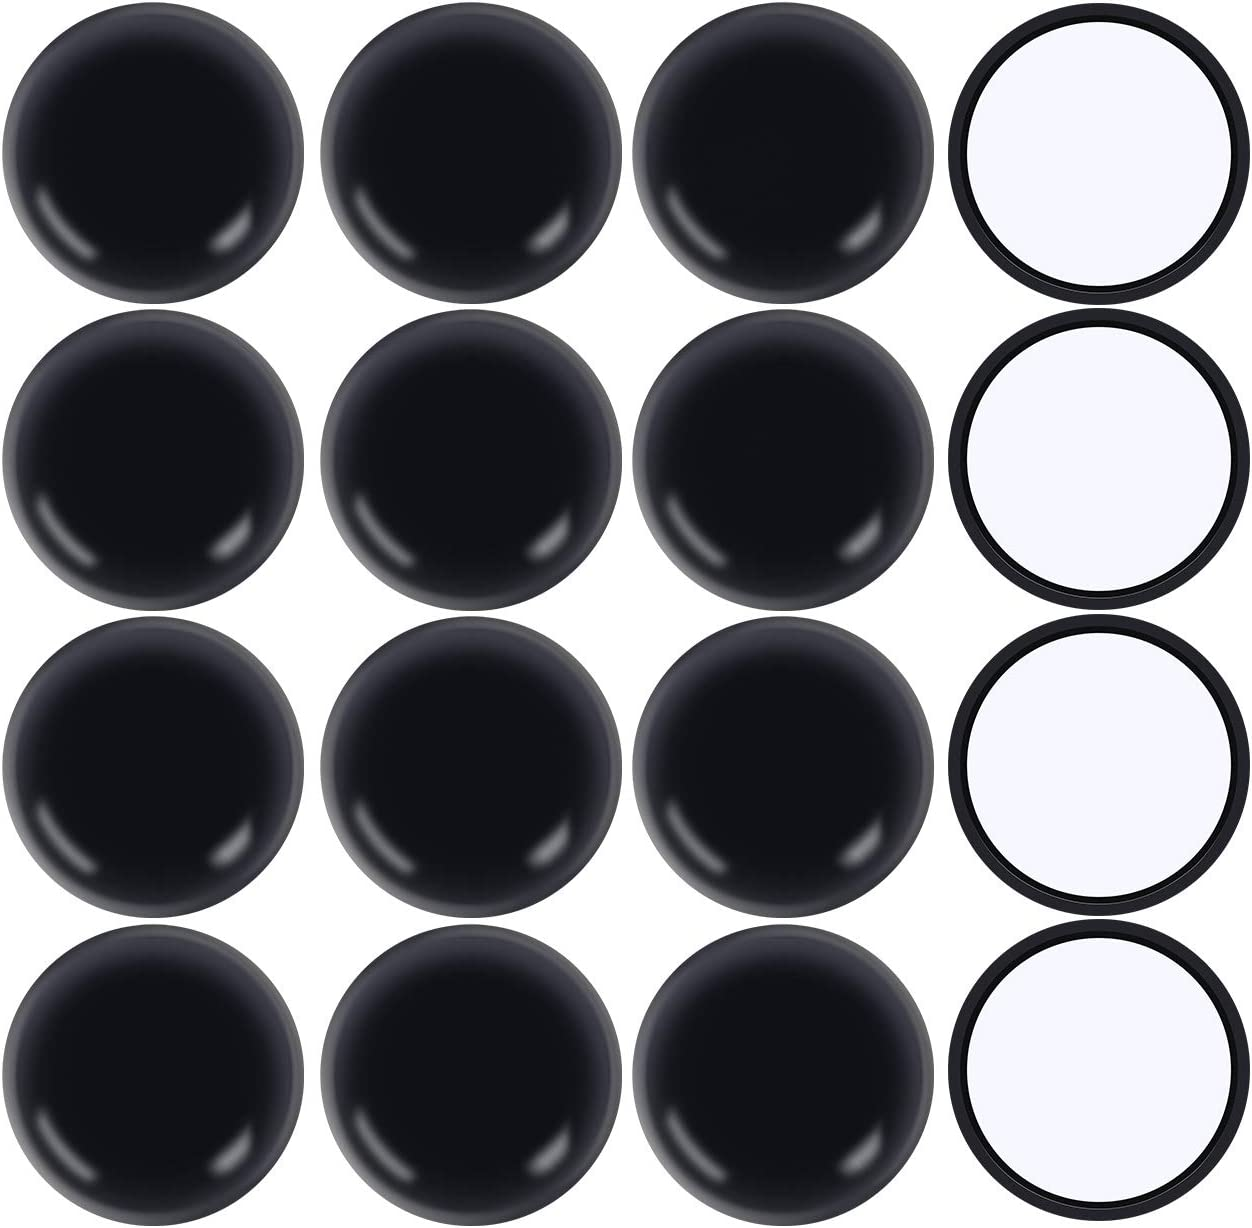 """Ezprotekt Round Black 16 Pack Self-Stick Furniture Sliders 2-1/8"""" Furniture Moving Pads Heavy Duty Adhesive Furniture Movers Chair Glides for Carpet"""